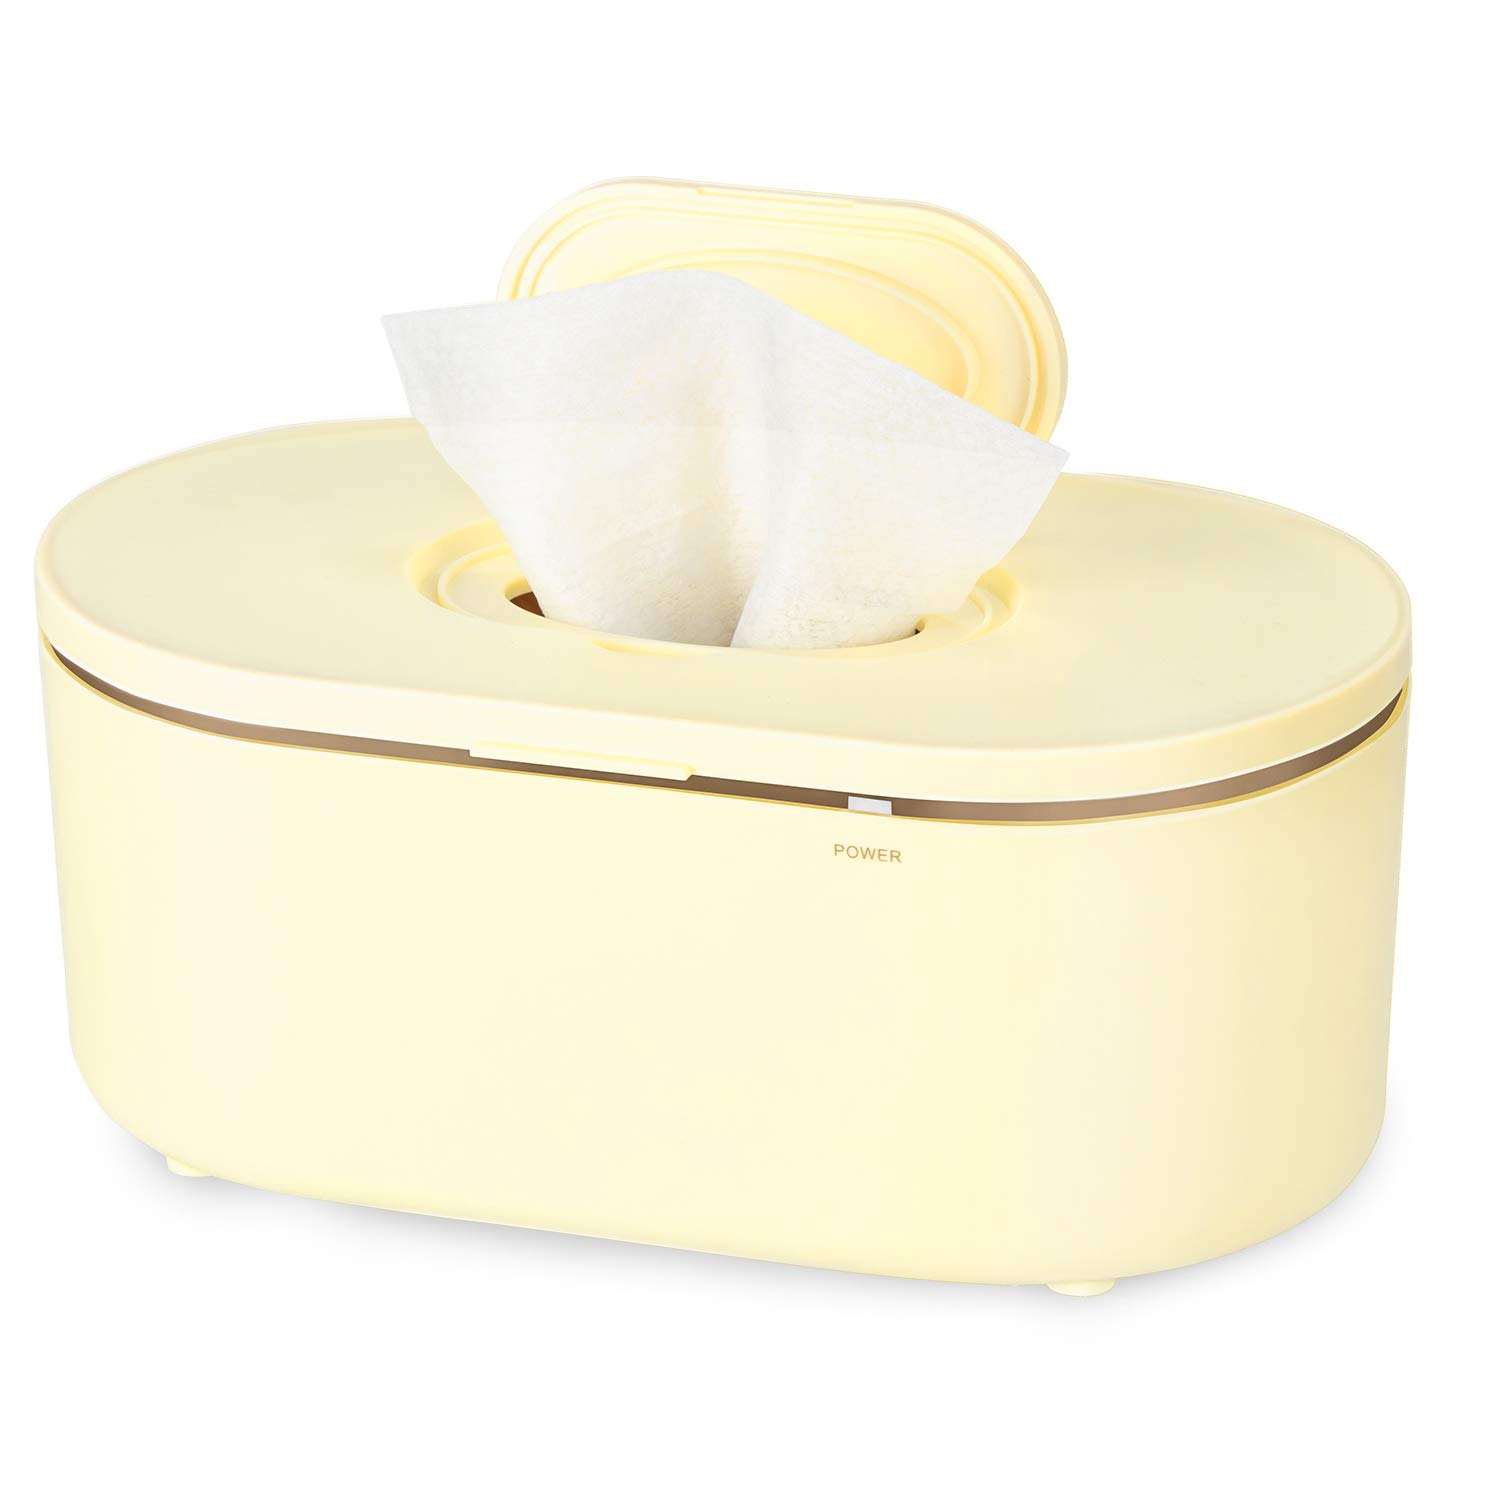 BAMMAX Wipe Warmer, Baby Wet Wipes Dispenser Holder Kid Diaper Wipe Warmer with Evenly and Quickly Surround Heating, Large Capacity, Super Silent, Soft Lighting, Perfect Warmth for Baby and Adult Wipe